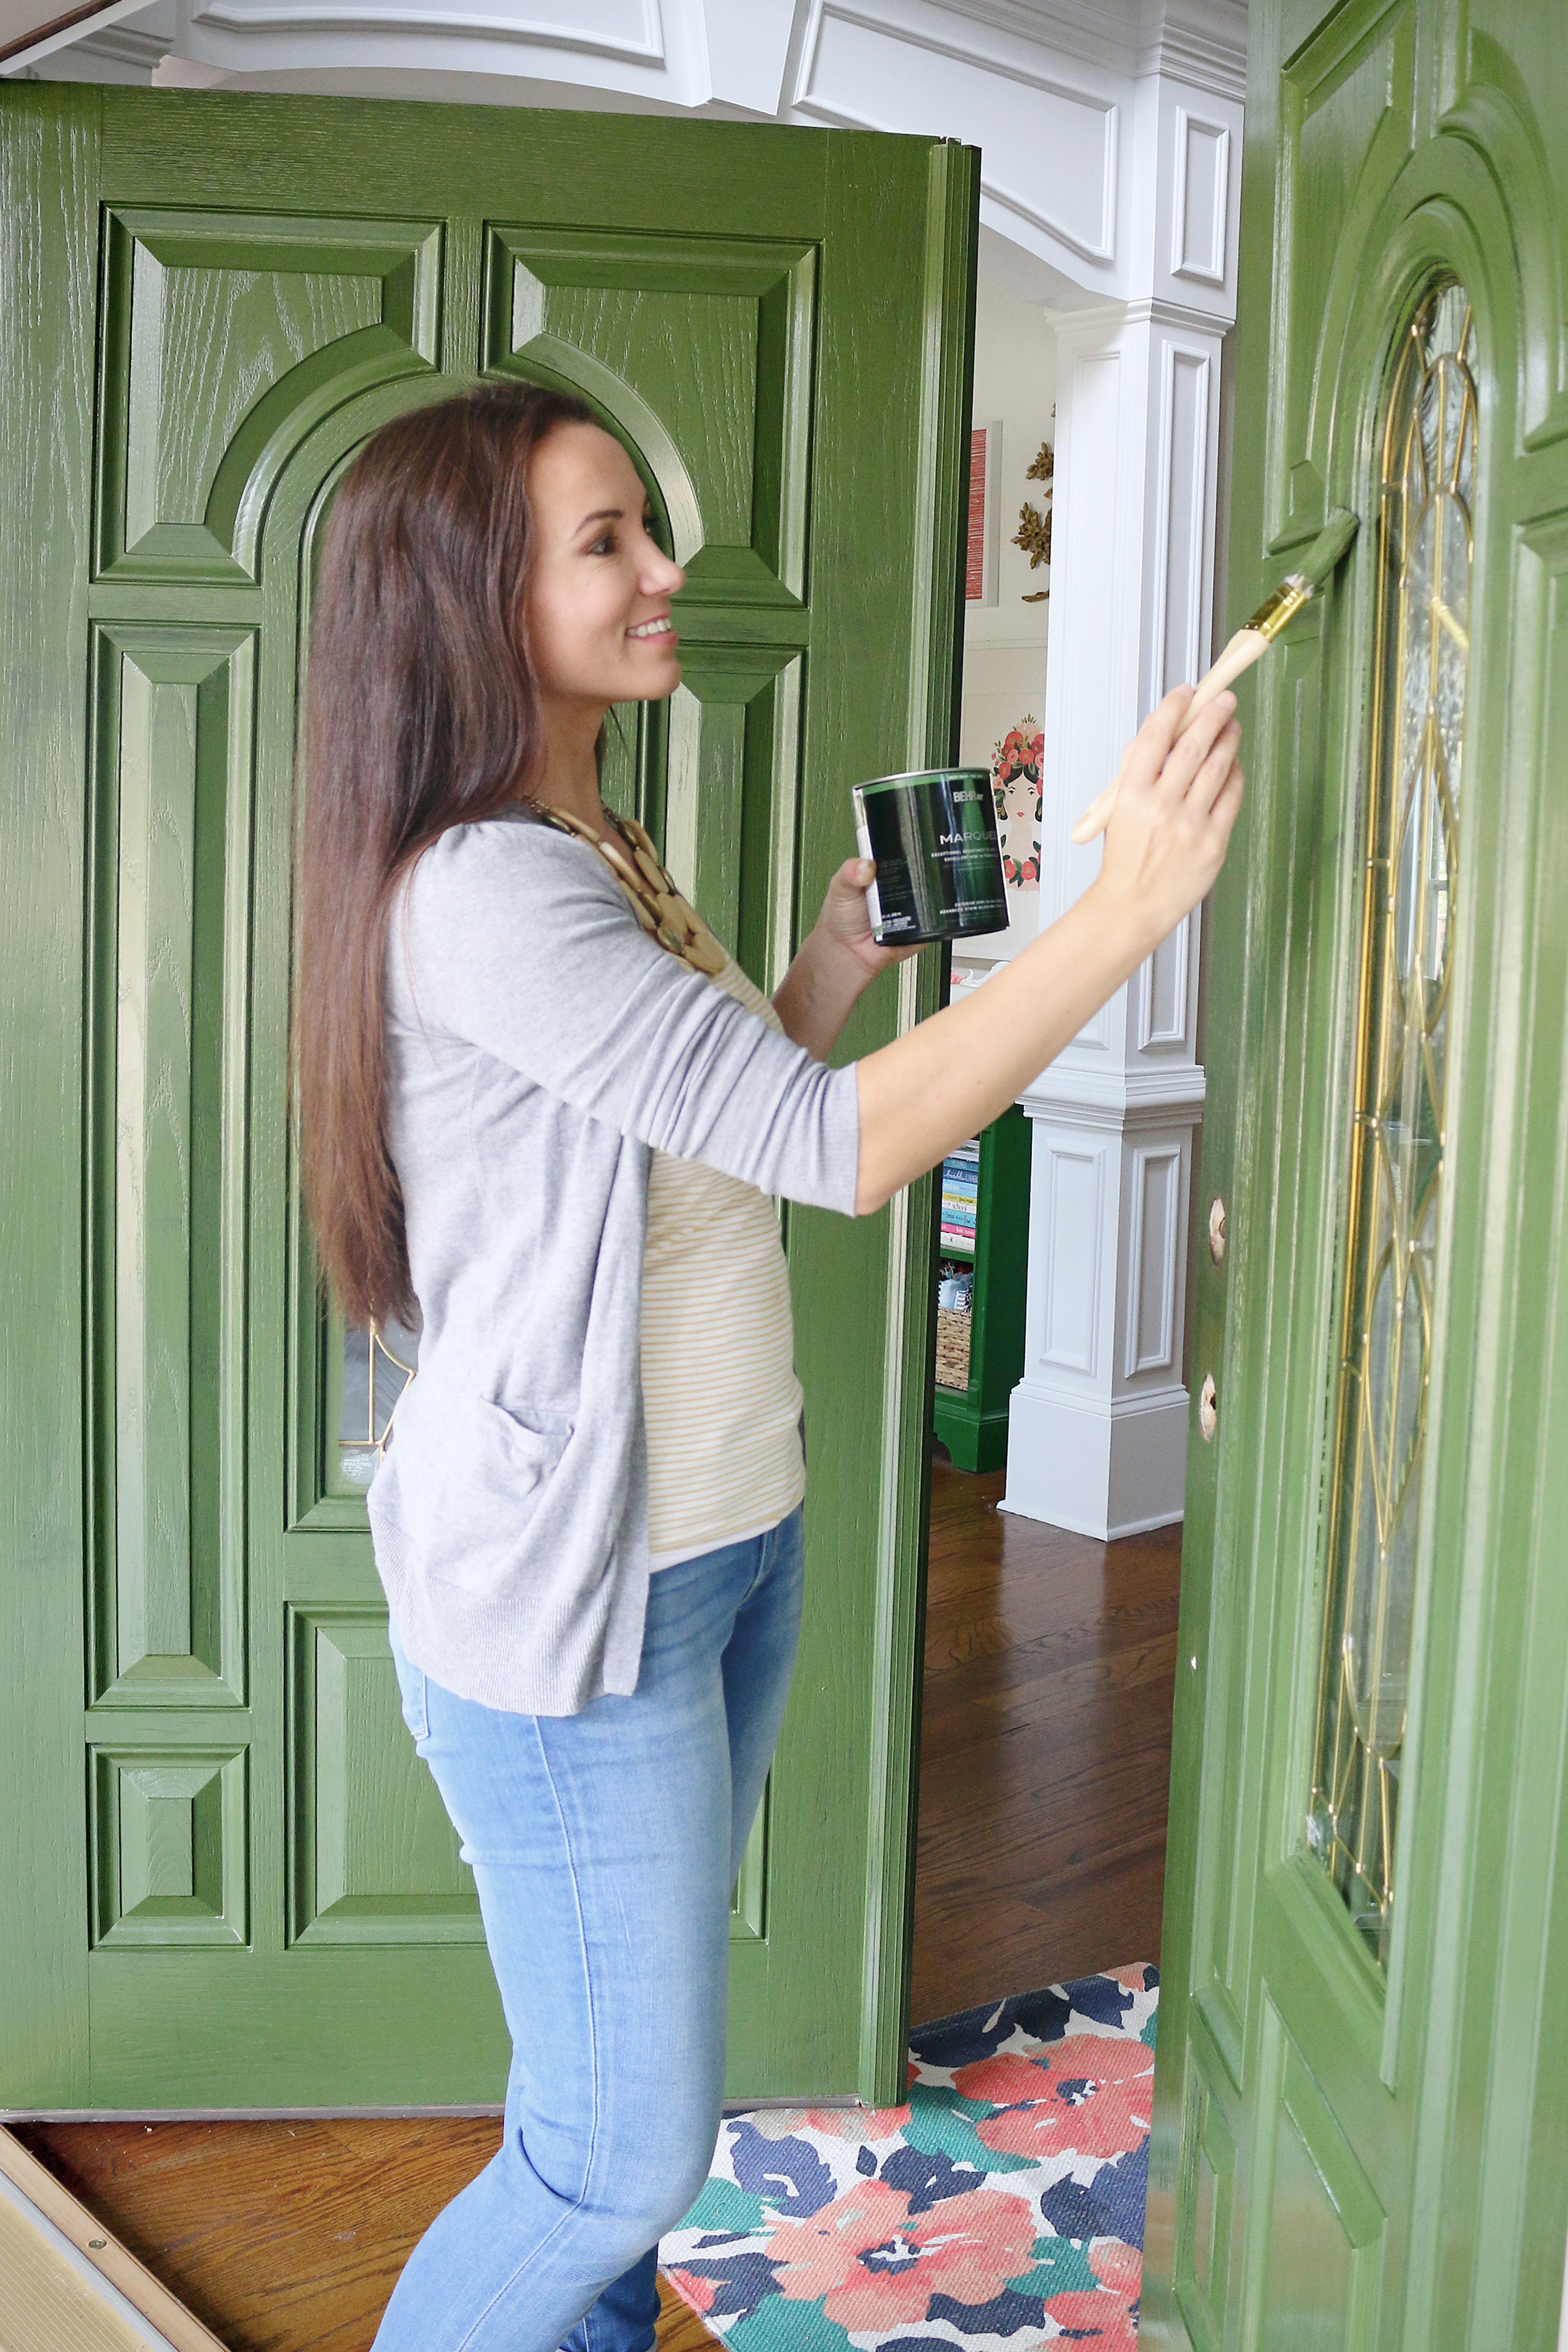 Woman painting her front door green